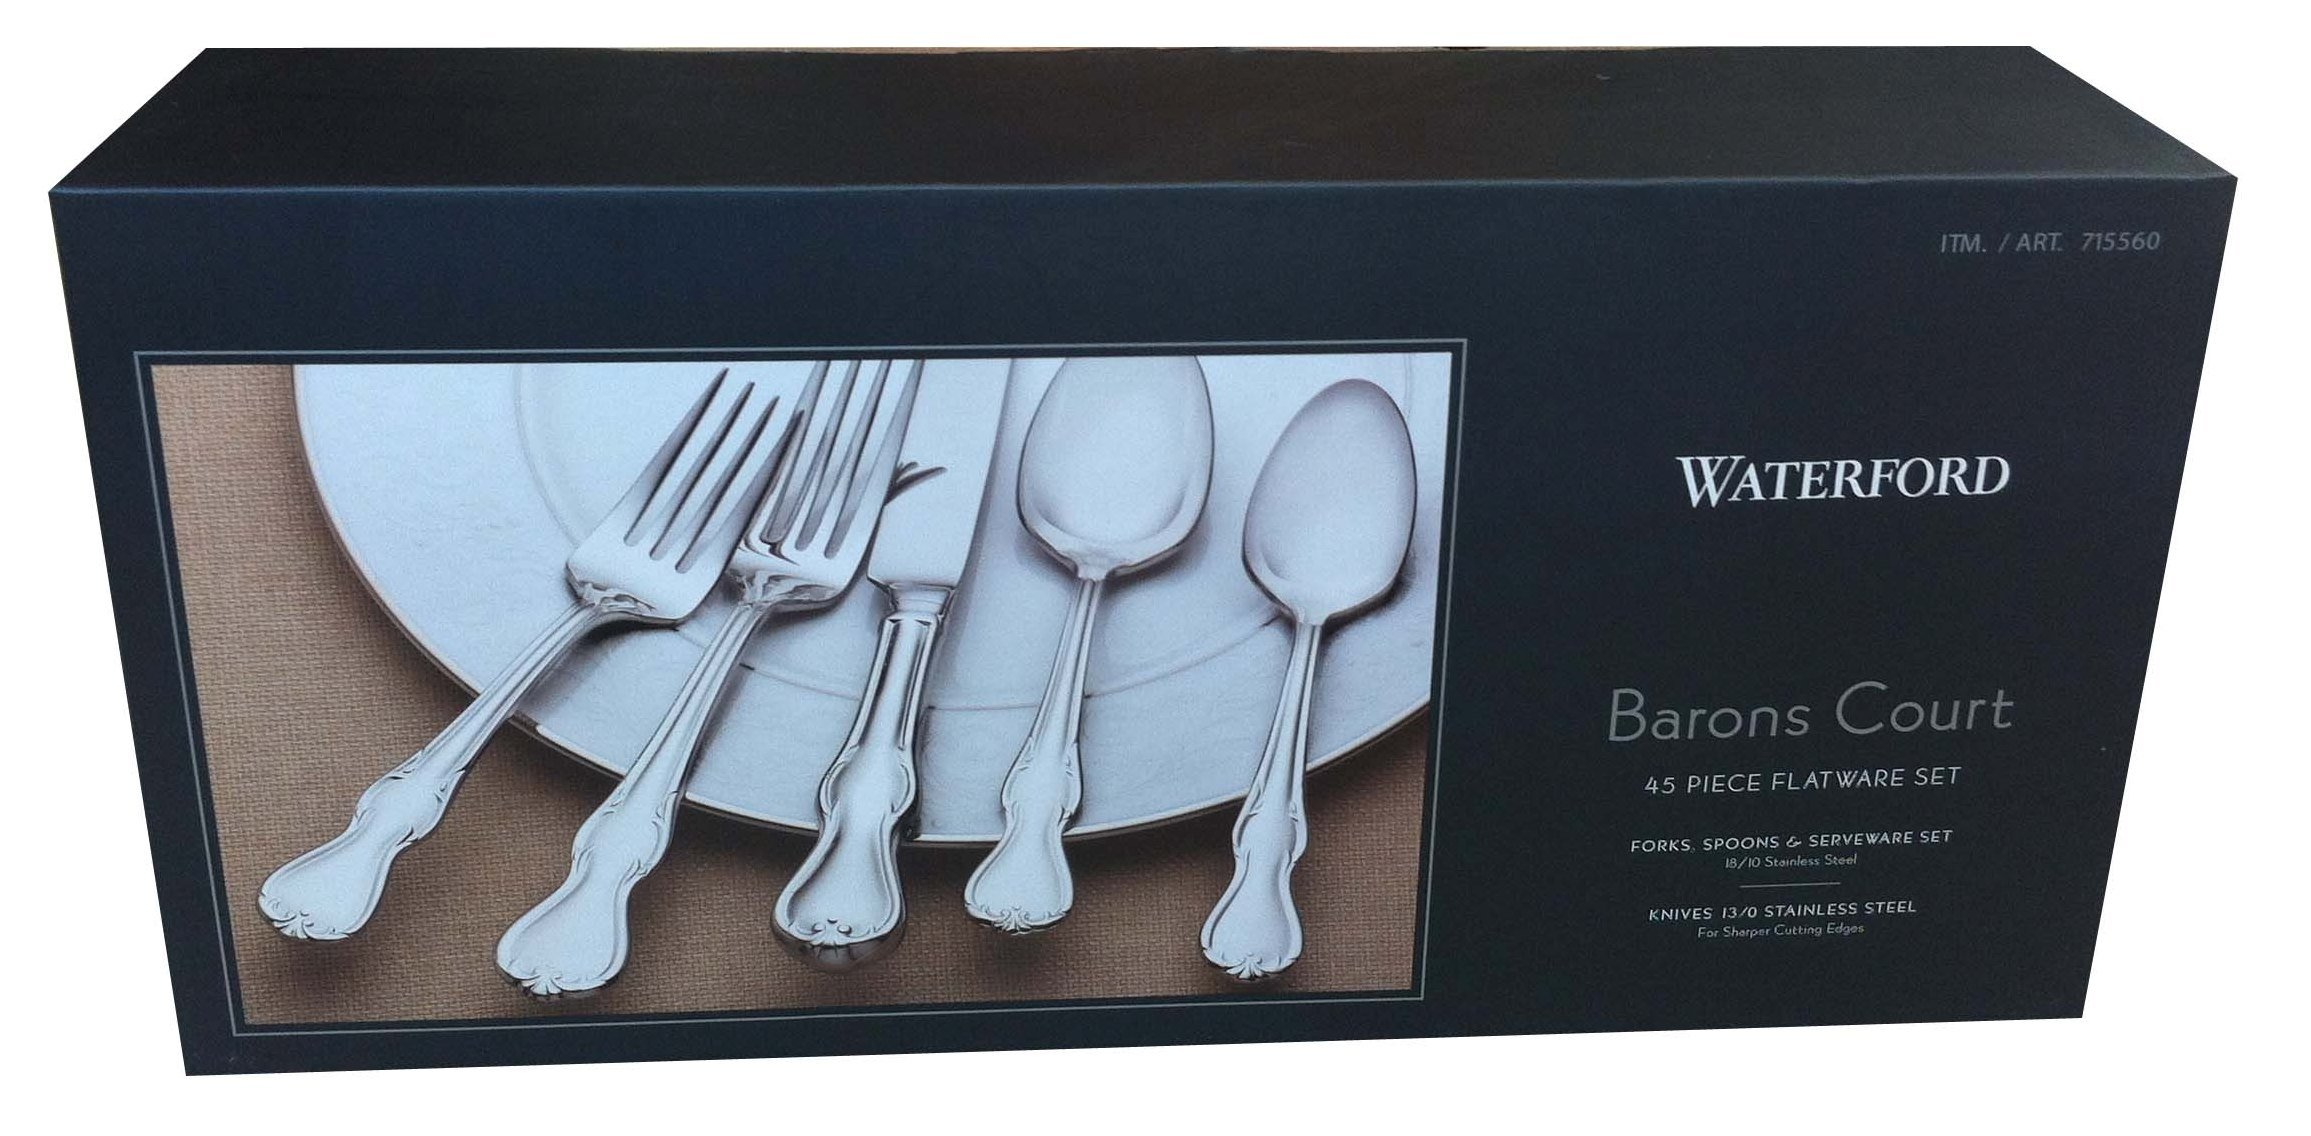 Waterford Barons Court 45 Piece Stainless Steel Flatware Set (Includes 5 Piece Hostess Serving Set)